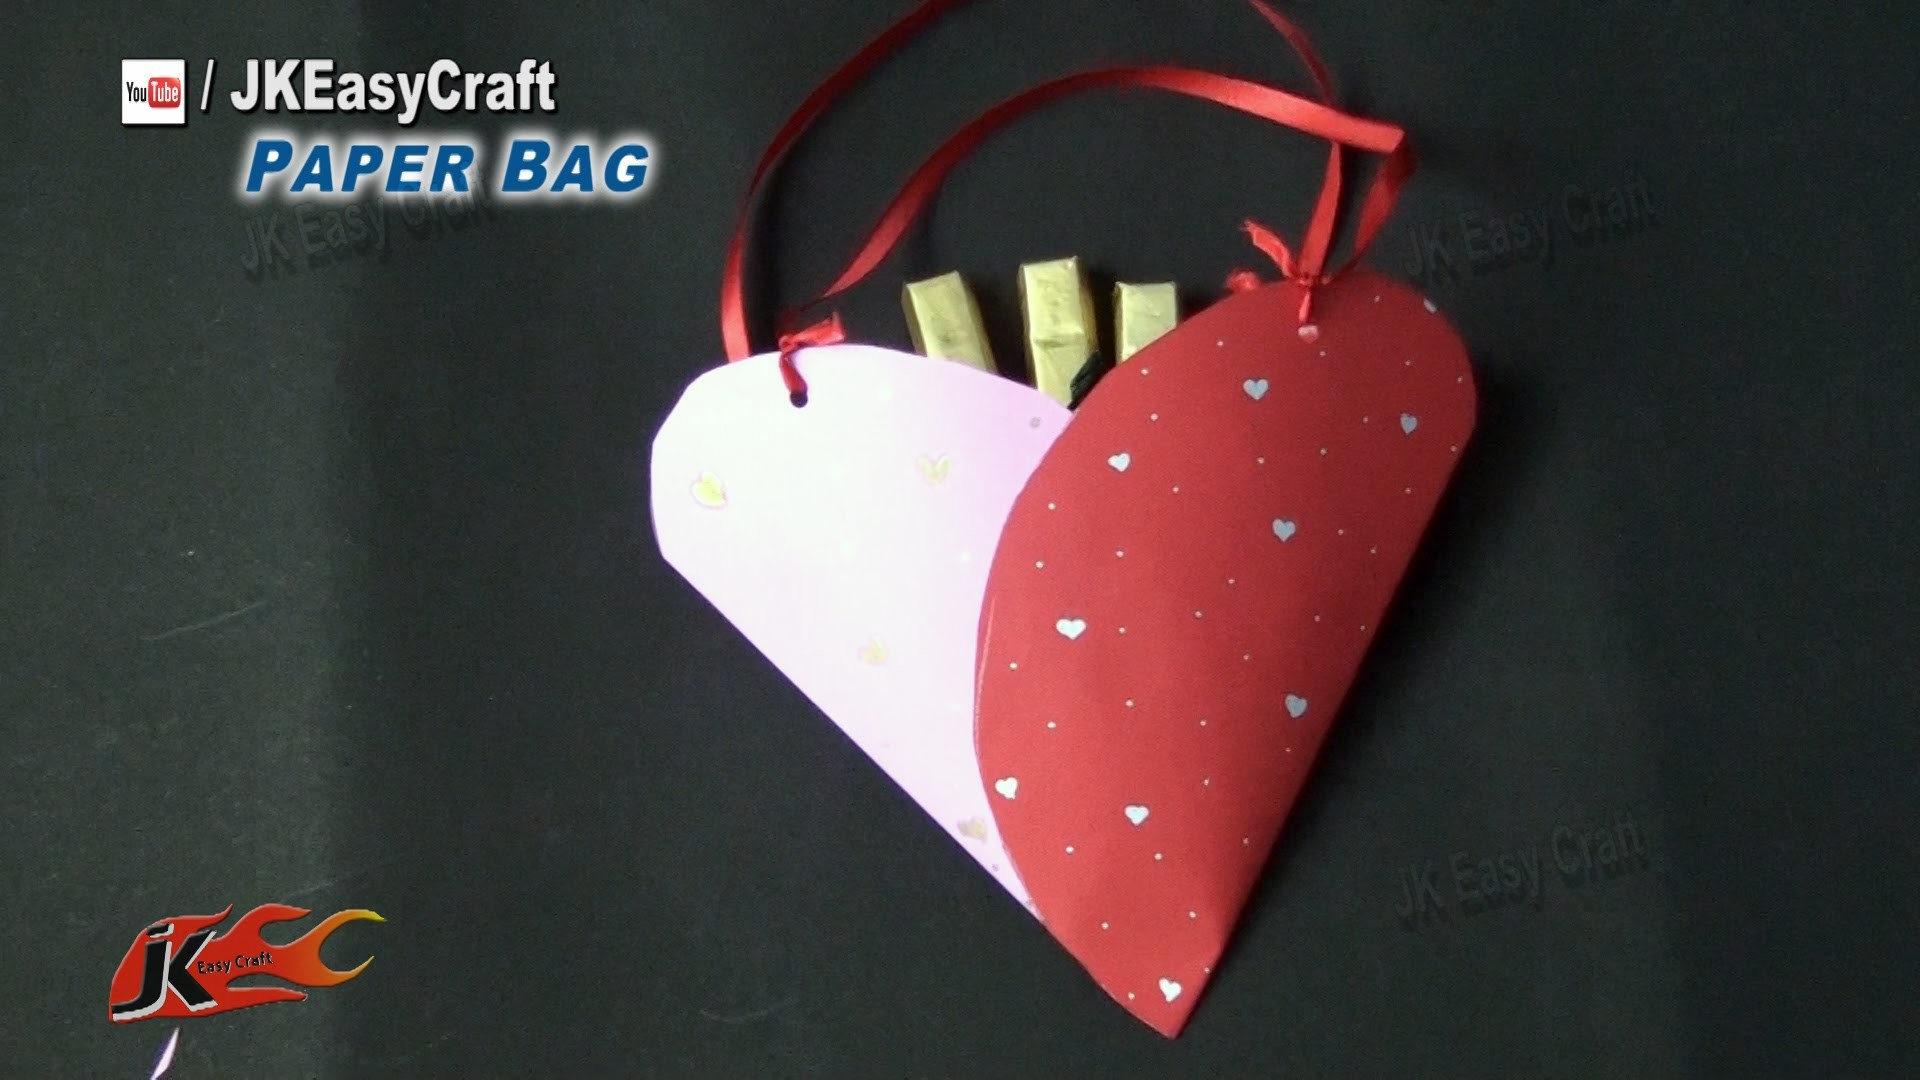 Easy Paper Bag | How to Make | Chocolates Gift Idea | JK Easy Craft 121